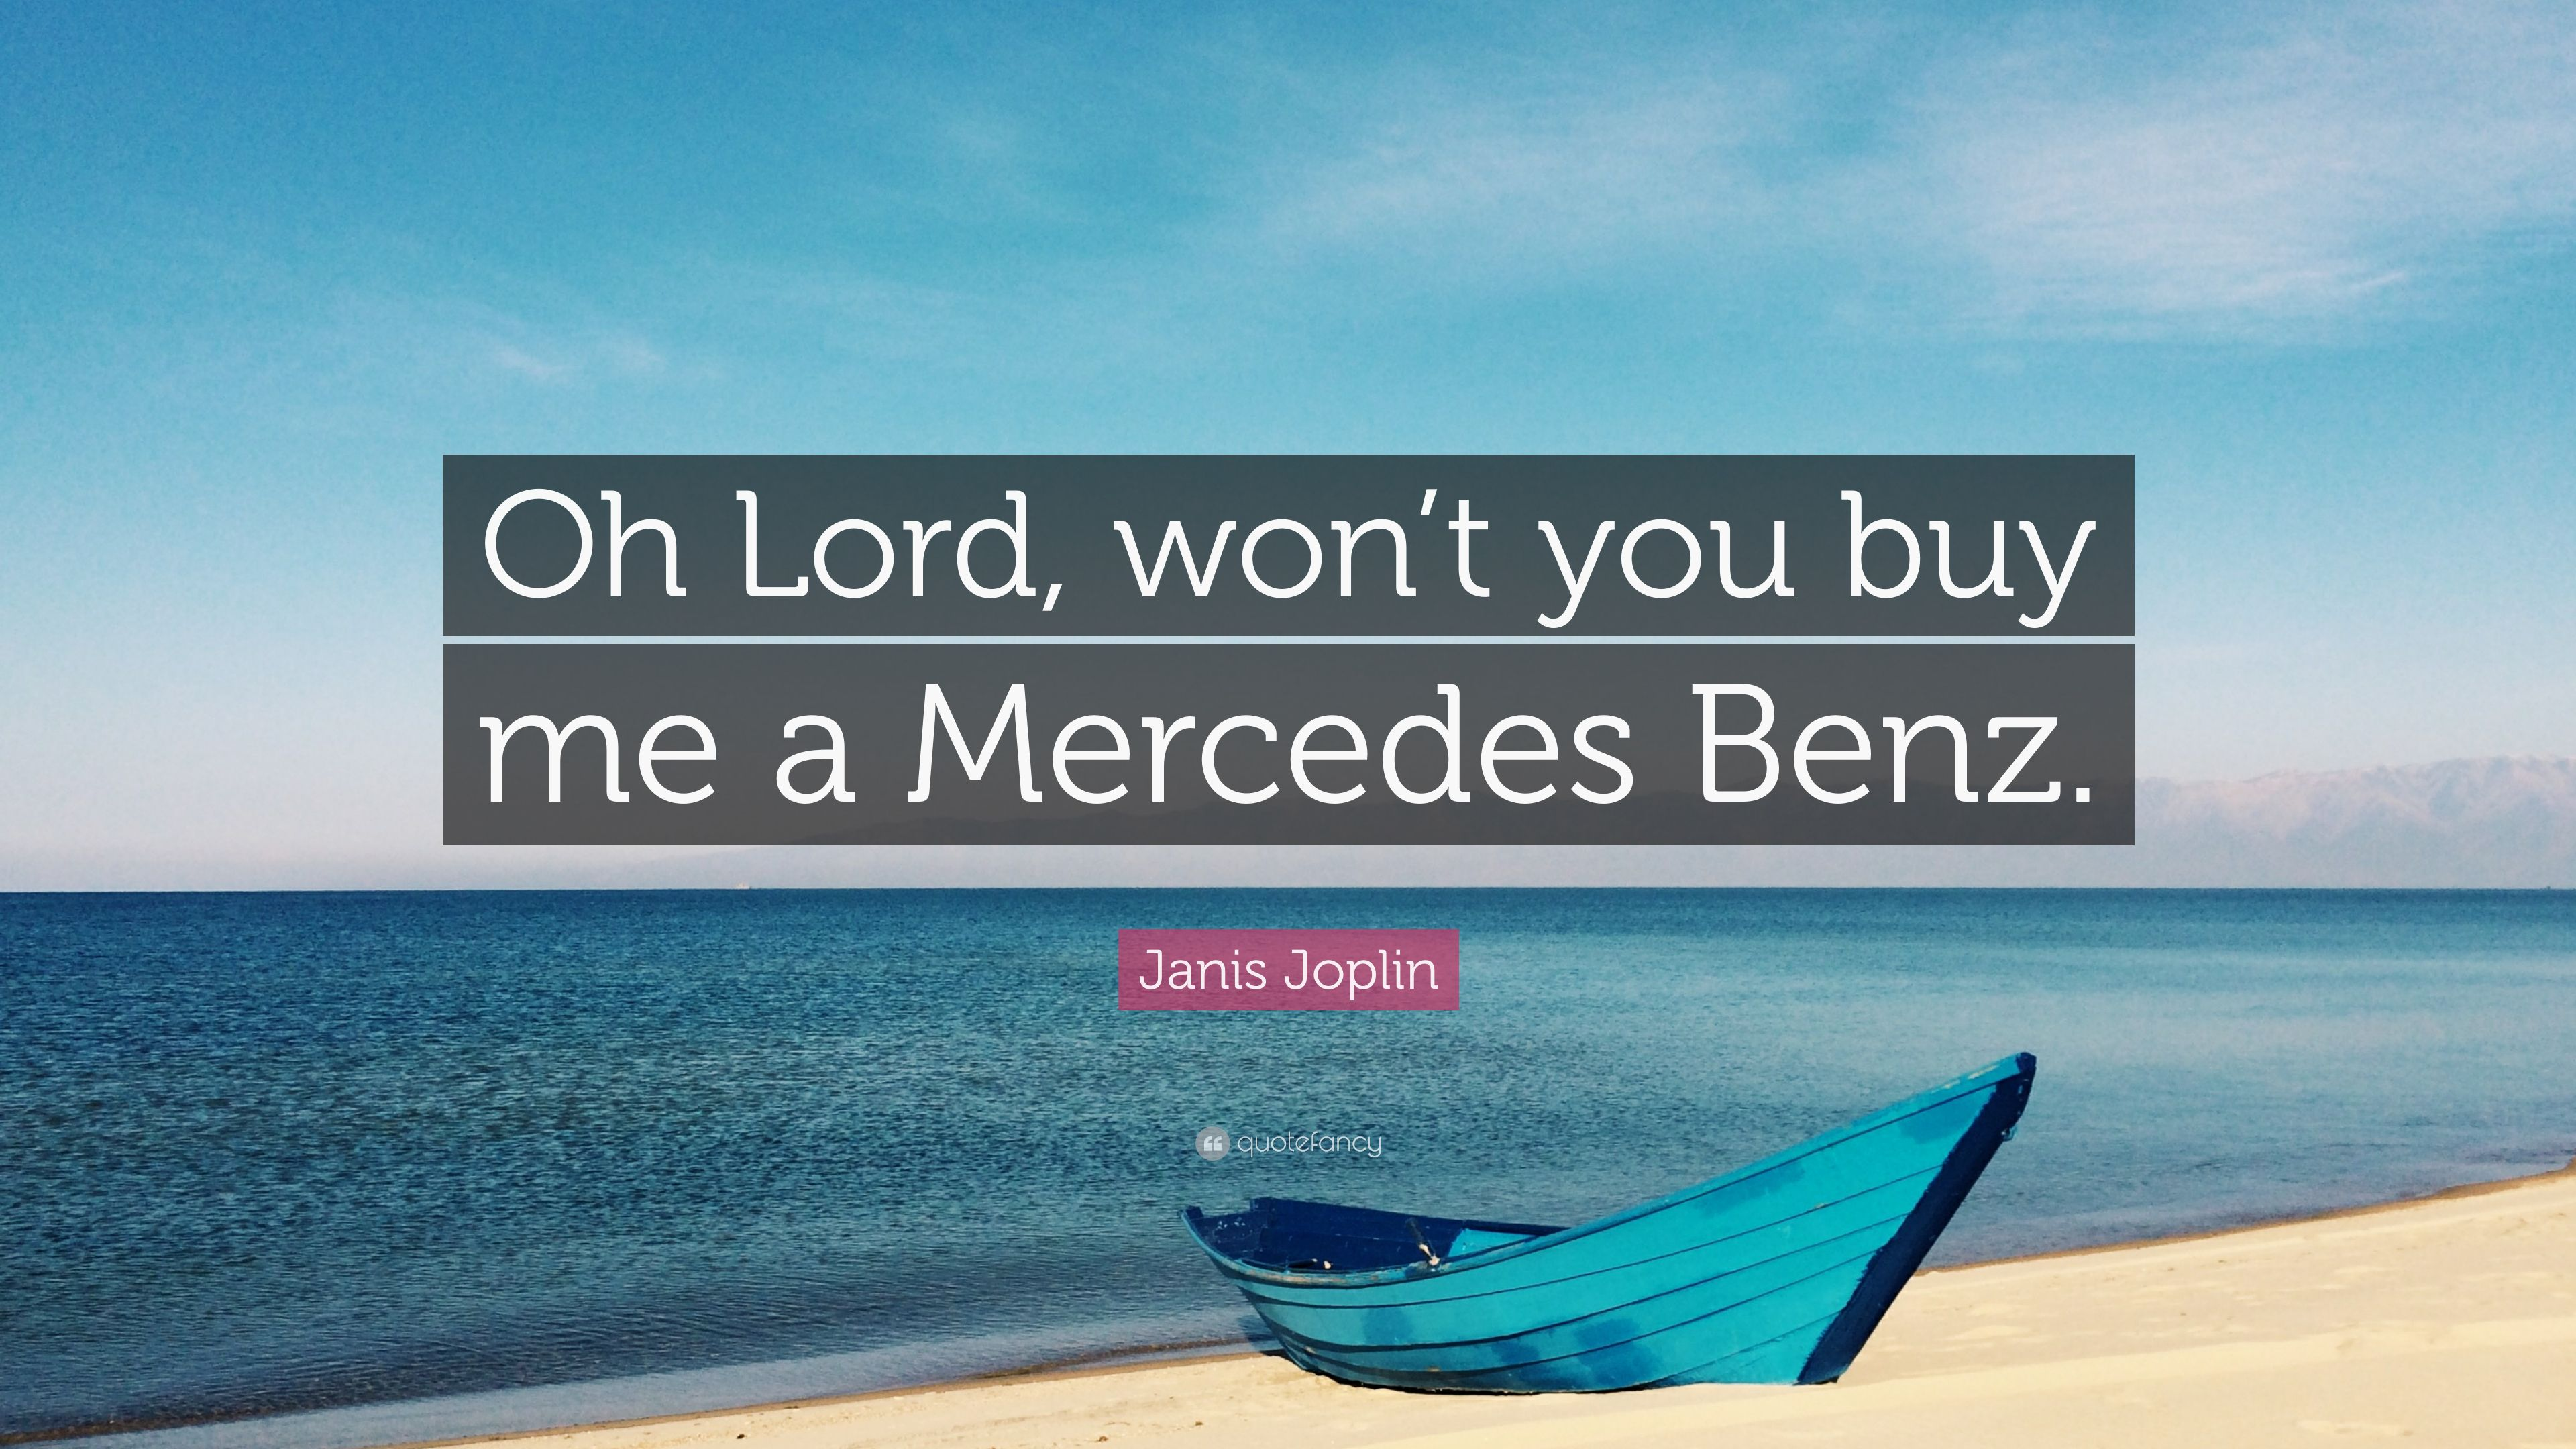 Janis joplin quote oh lord won t you buy me a mercedes for Oh lord won t you buy me a mercedes benz